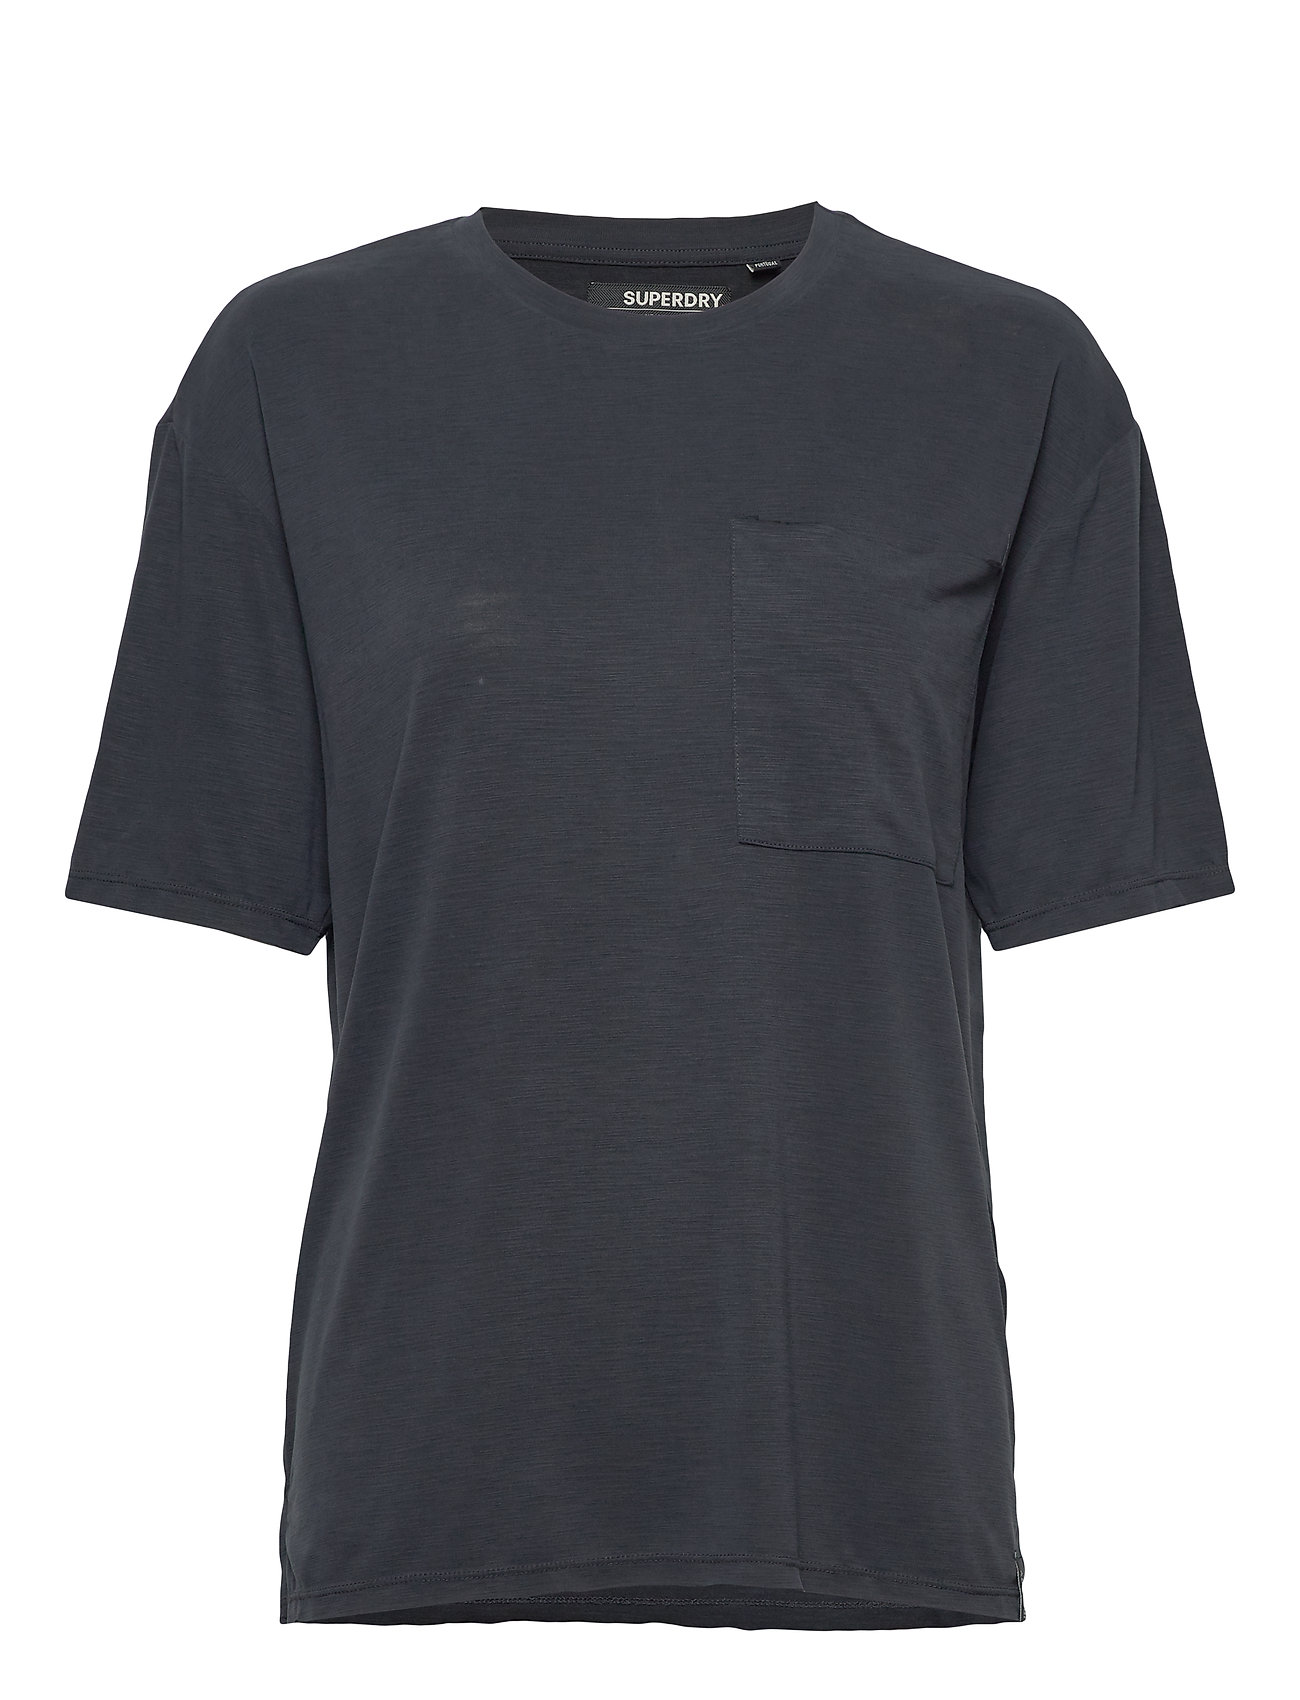 Superdry CANYON ESSENTIAL PoCKET TEE - BLACK